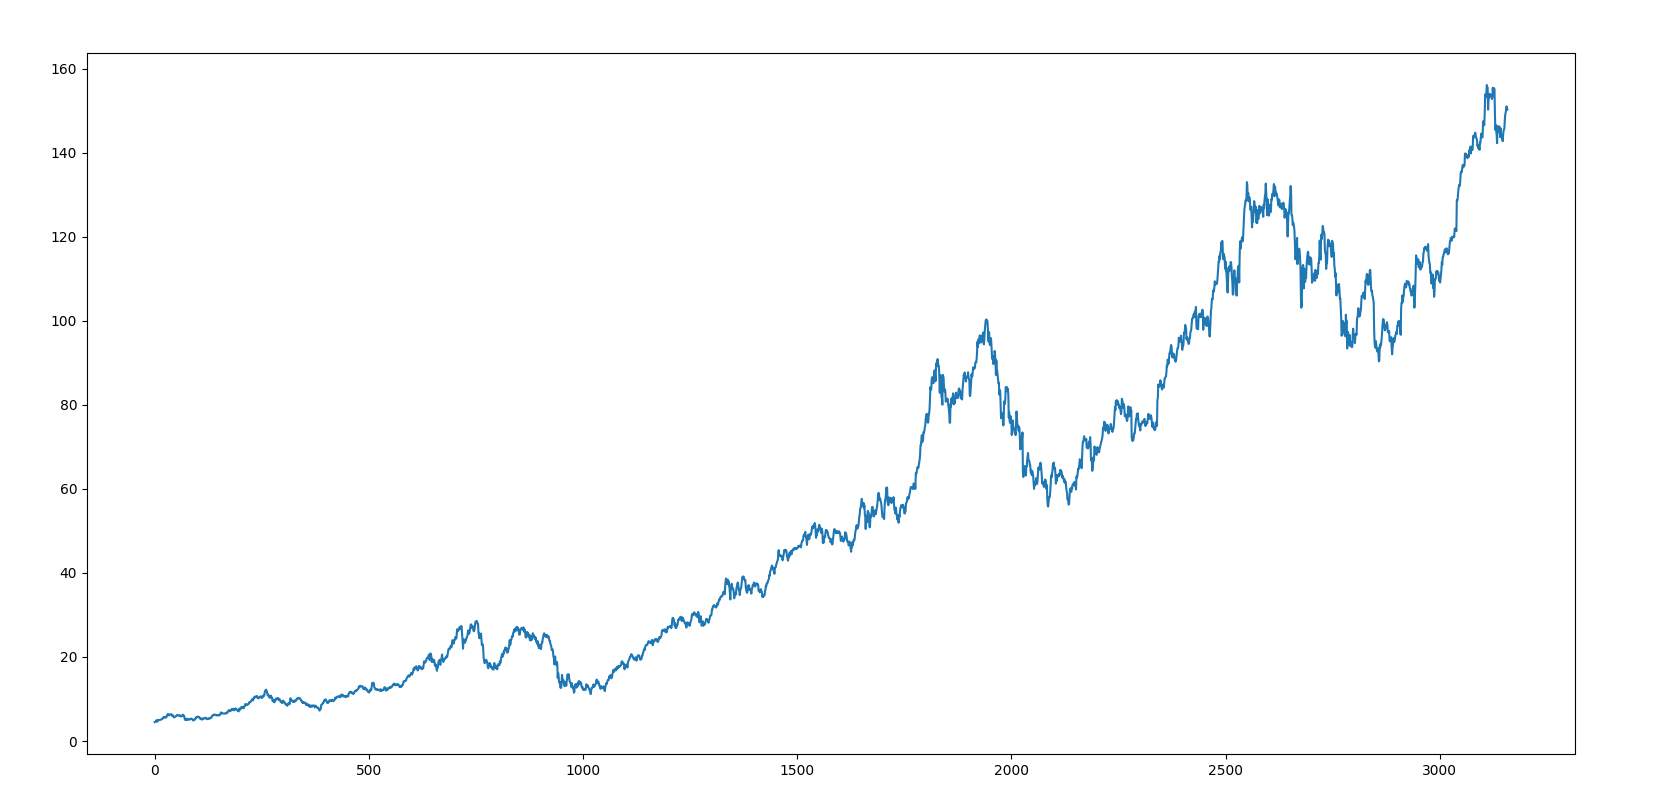 Download Historical Stock Data With R And Python